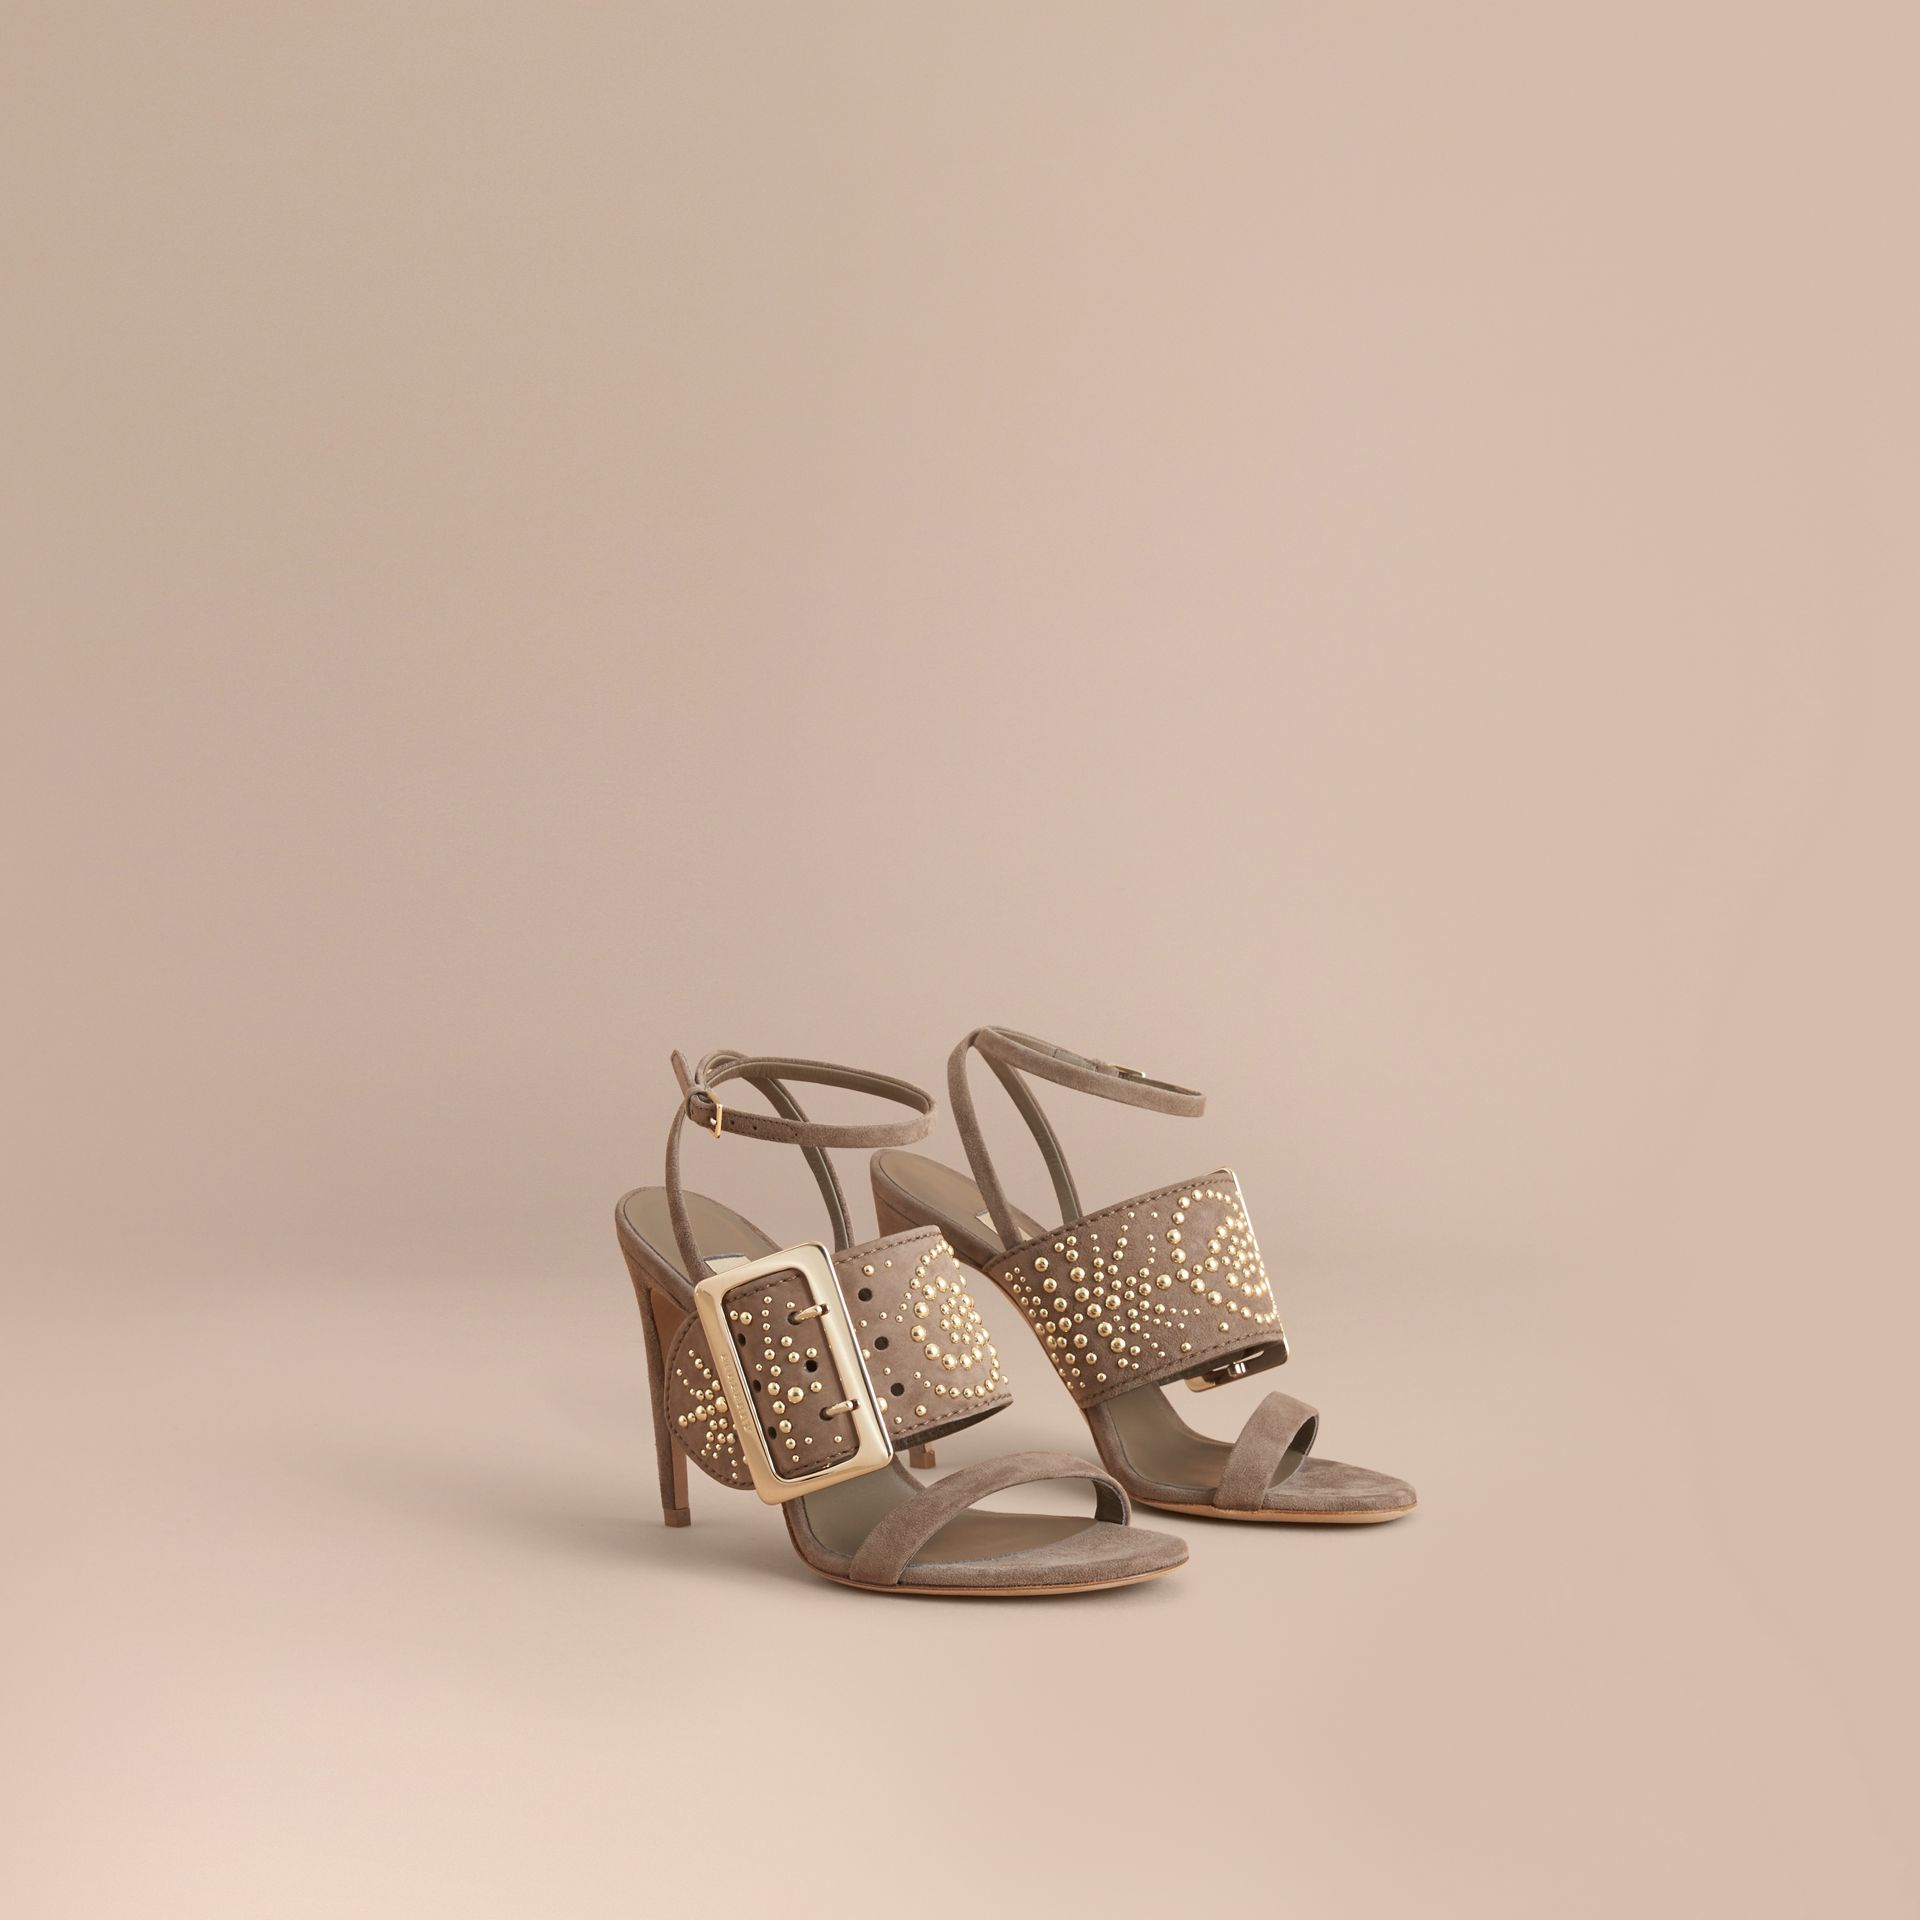 Riveted Suede Sandals with Buckle Detail in Dark Heather Melange - gallery image 1